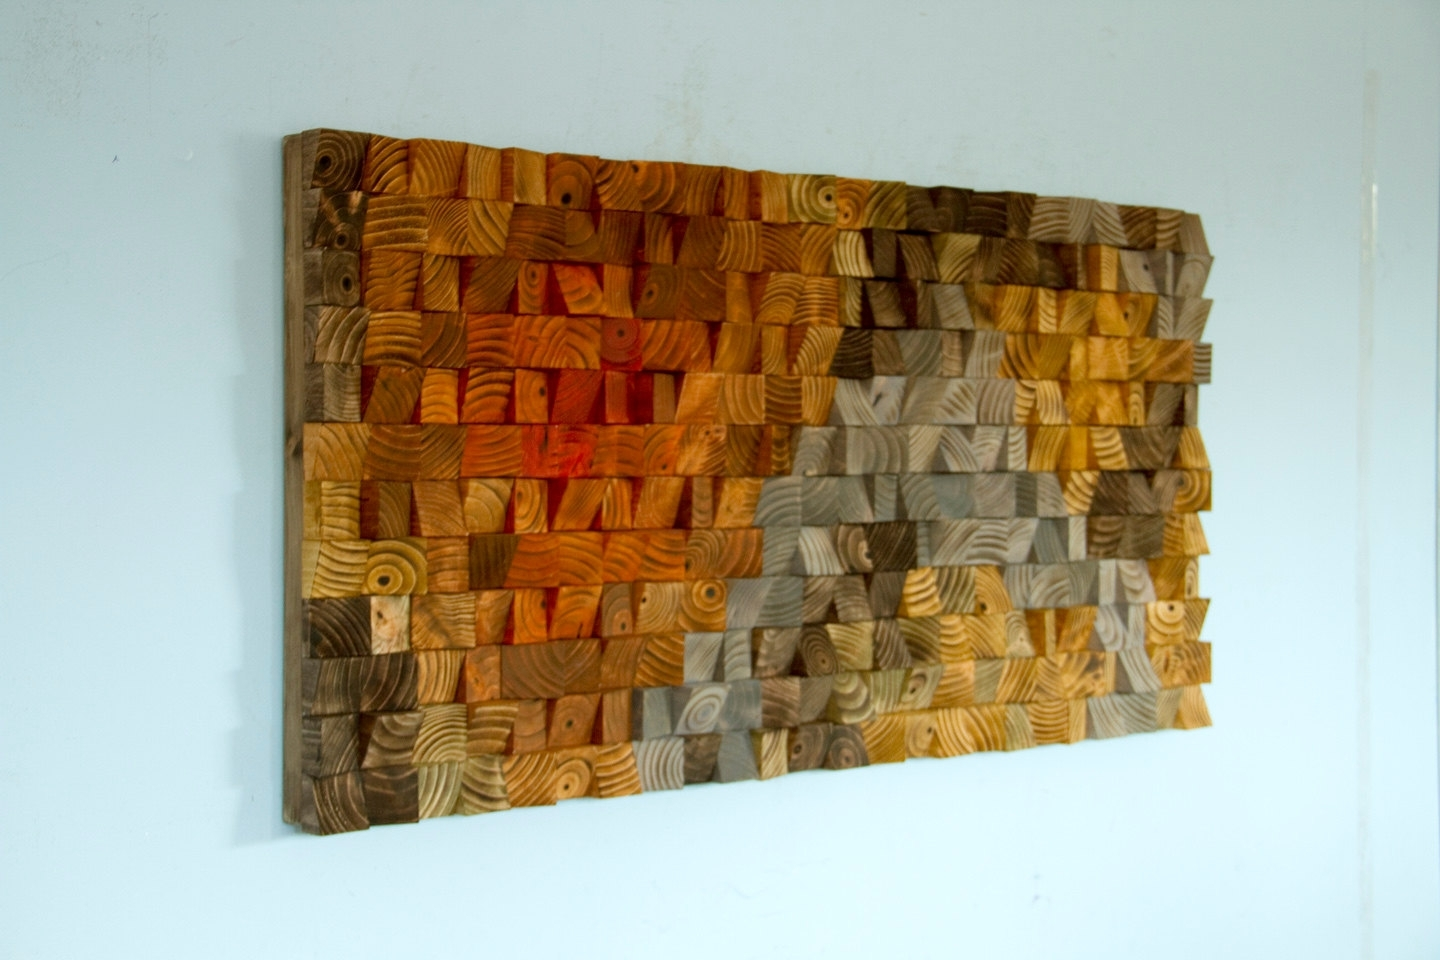 Rustic Wood Wall Art, Wood Wall Sculpture, Abstract Wood Art – Art Throughout Most Popular Sculpture Abstract Wall Art (Gallery 7 of 20)